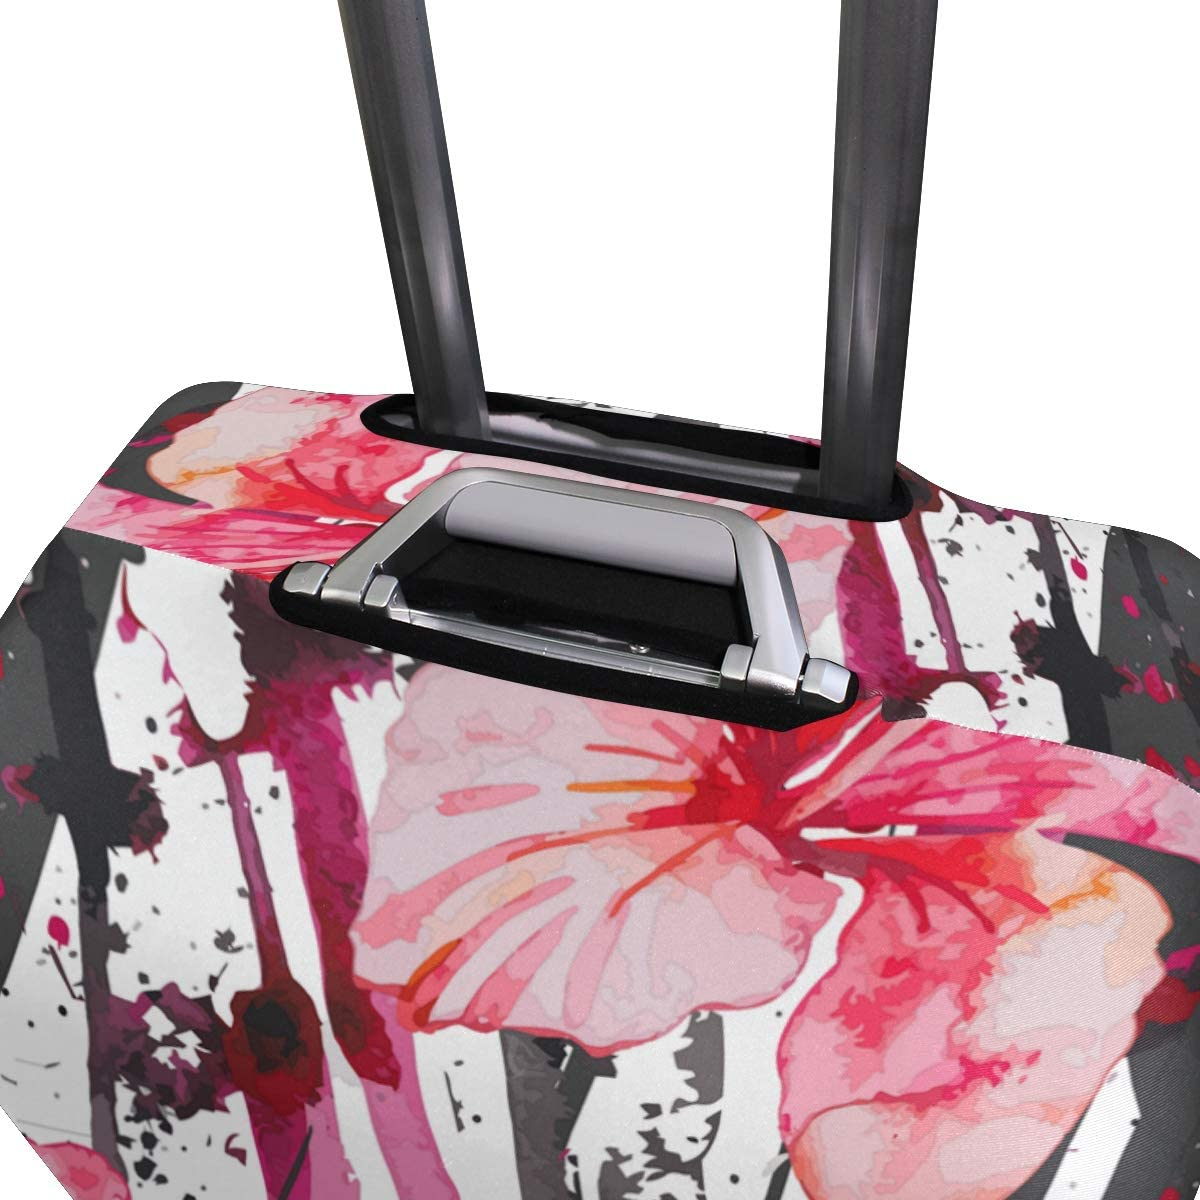 Travel Luggage Cover Protector Suitcase Washable Cover High Elasticity Fits 18-32 Inch Luggage Covers